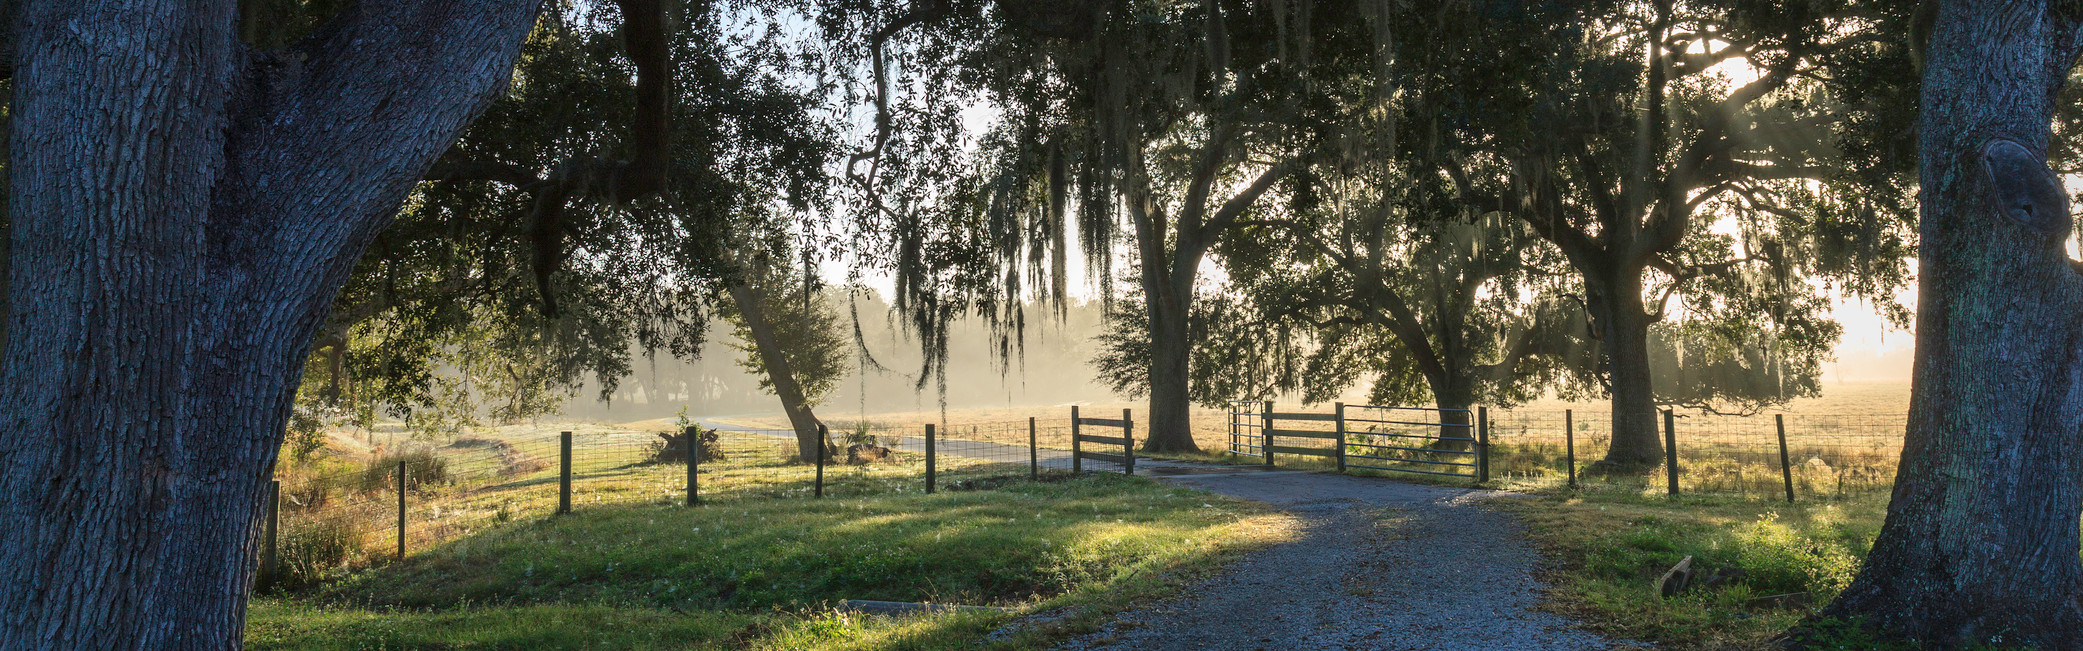 Tax benefits of owning rural land banner